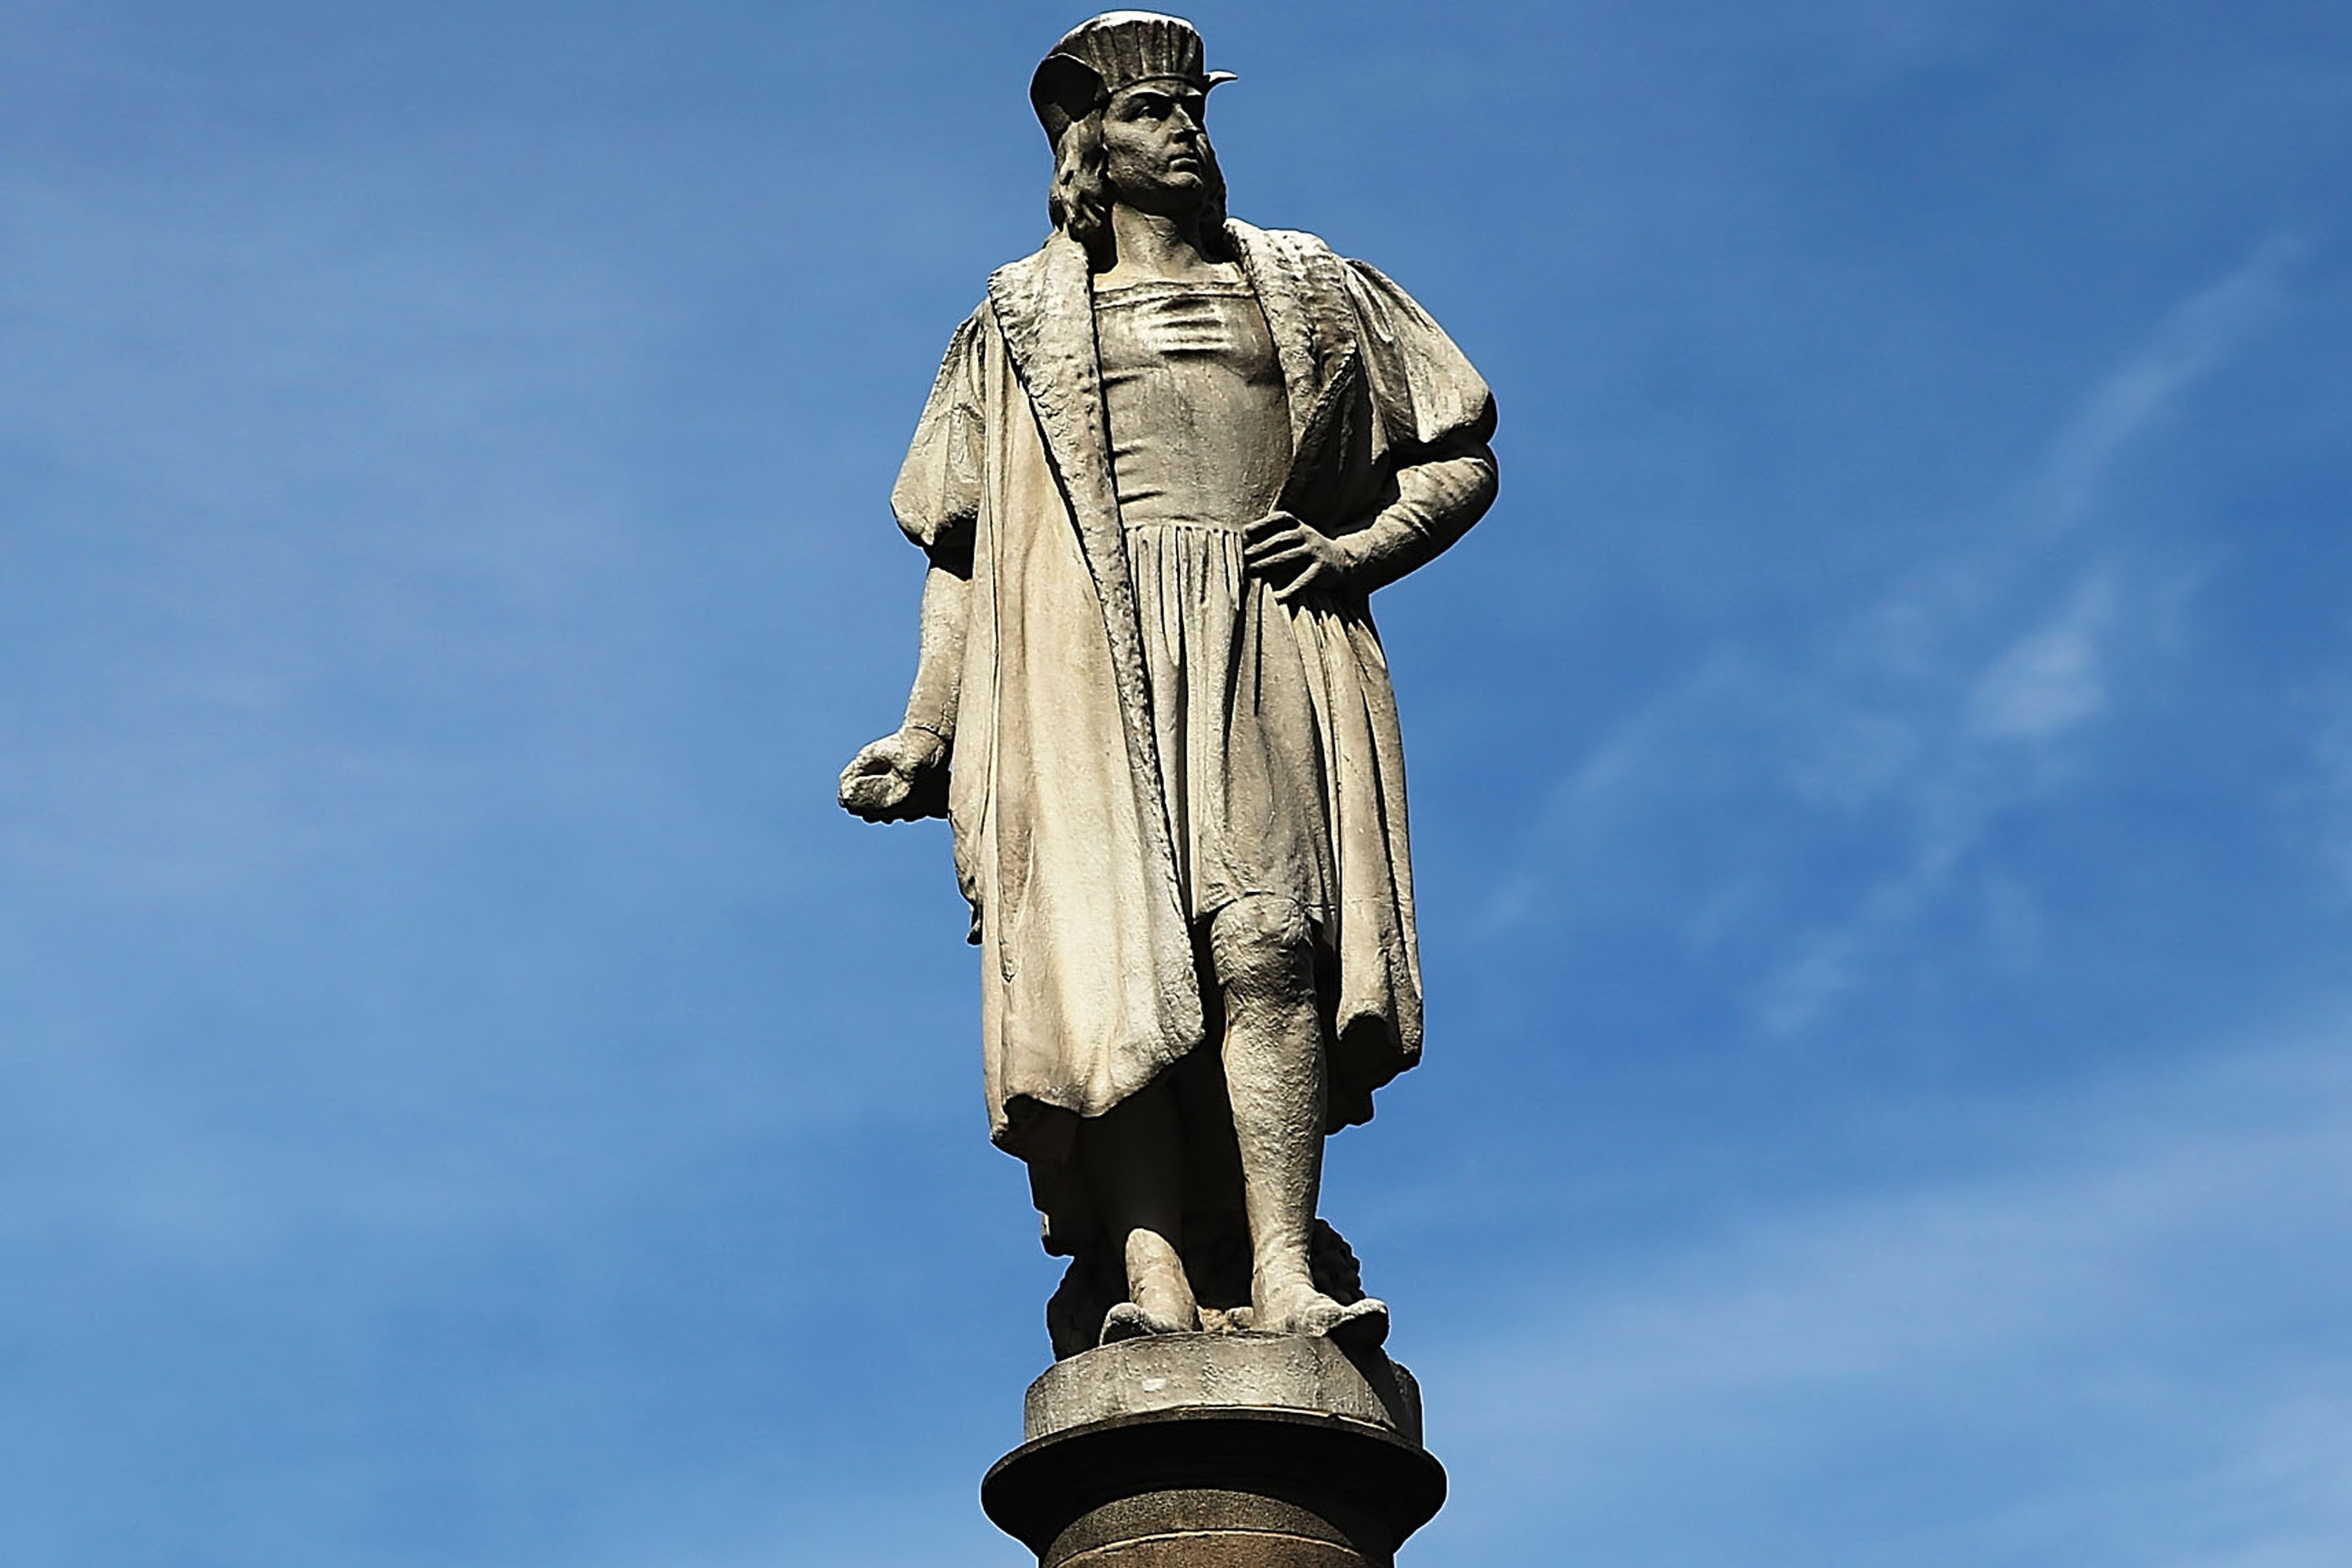 Statue of Christopher Columbus at Columbus Circle in New York.